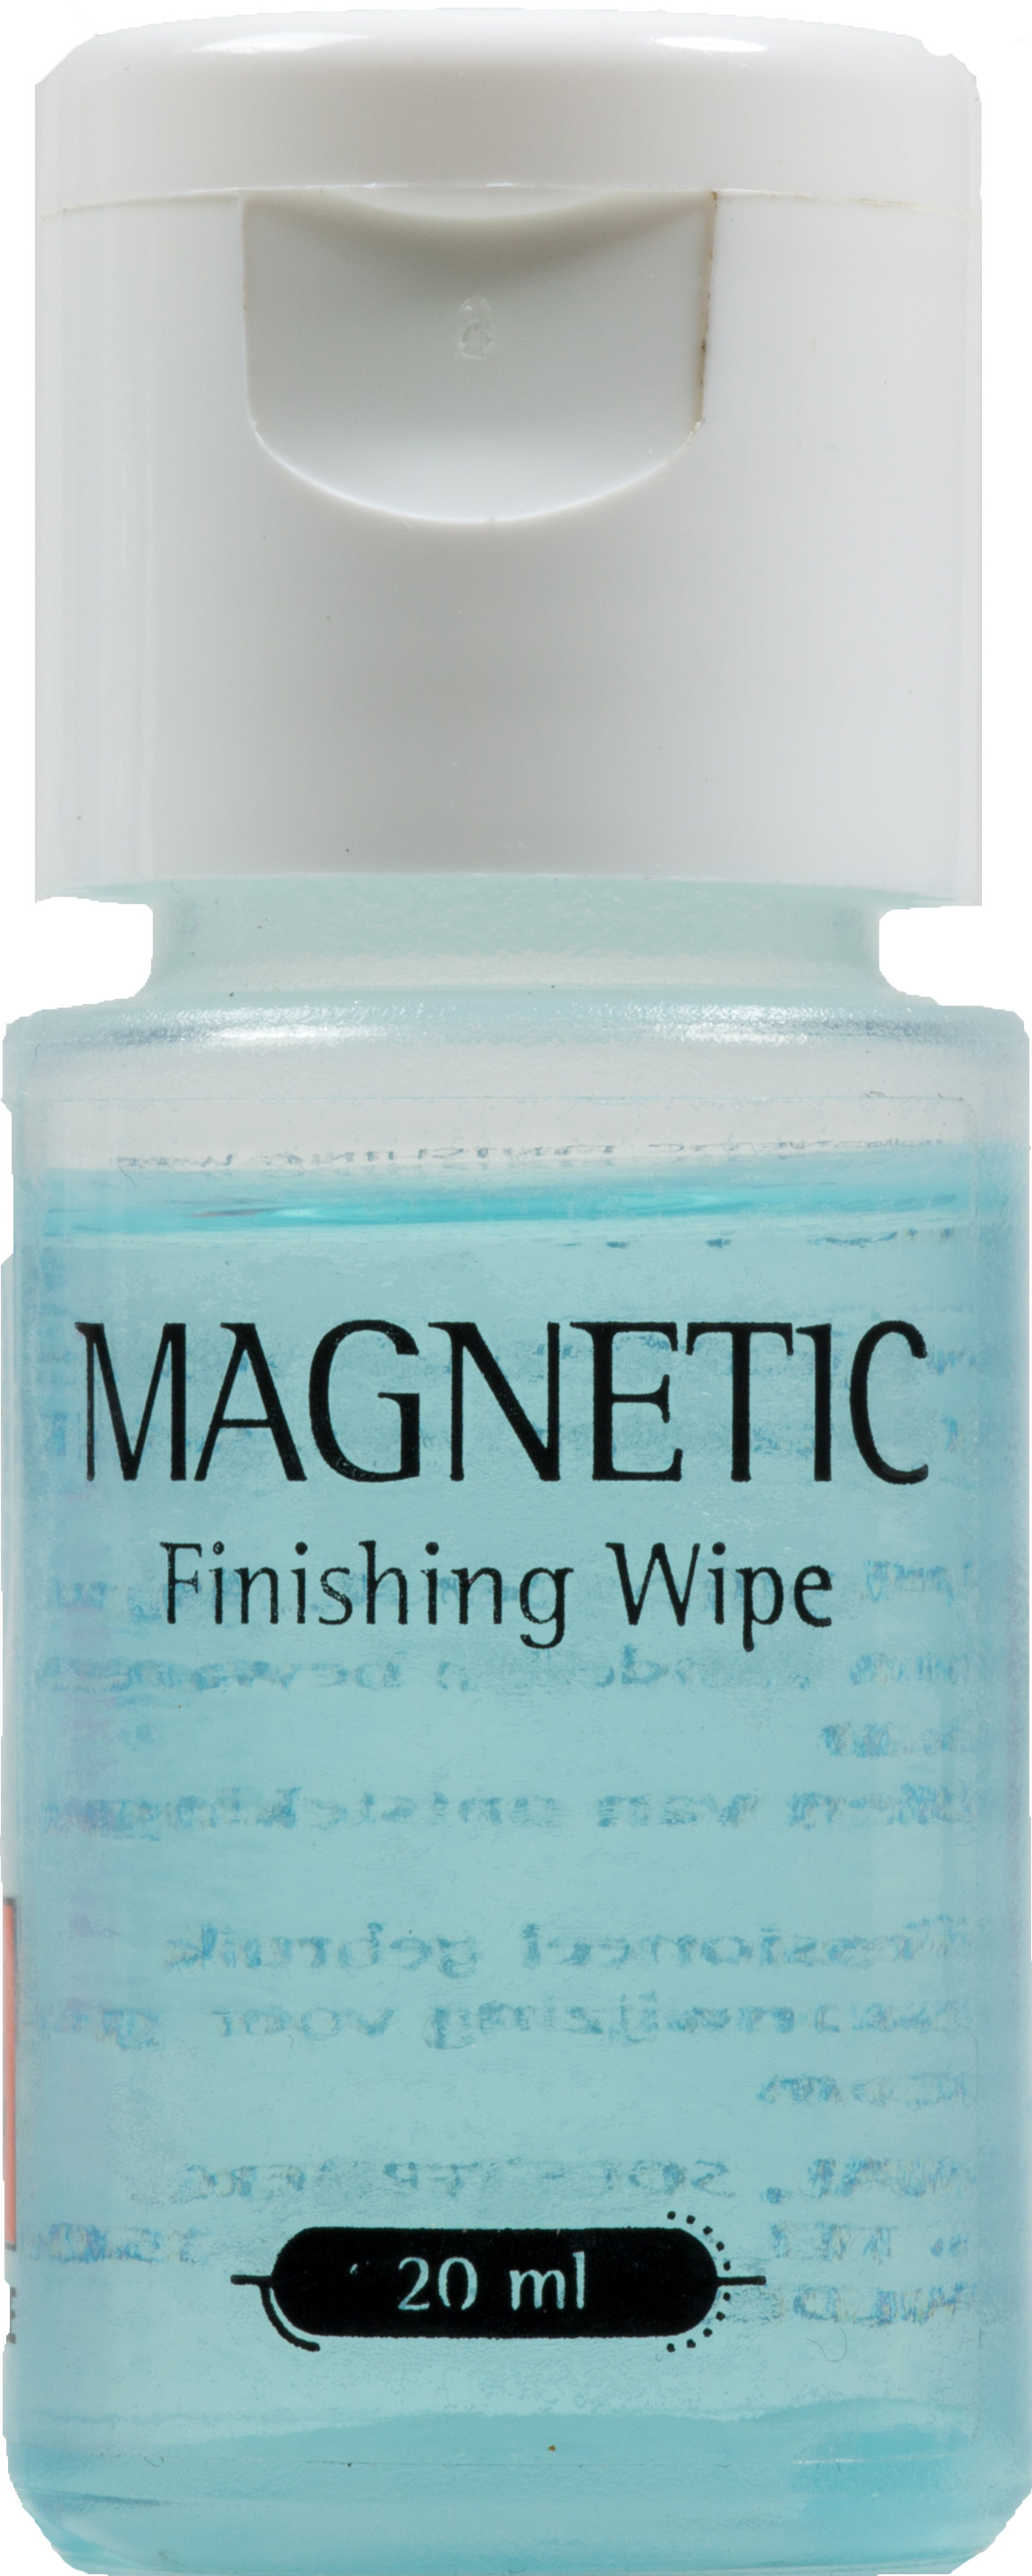 Naglar Finishing Wipe - 20 ml